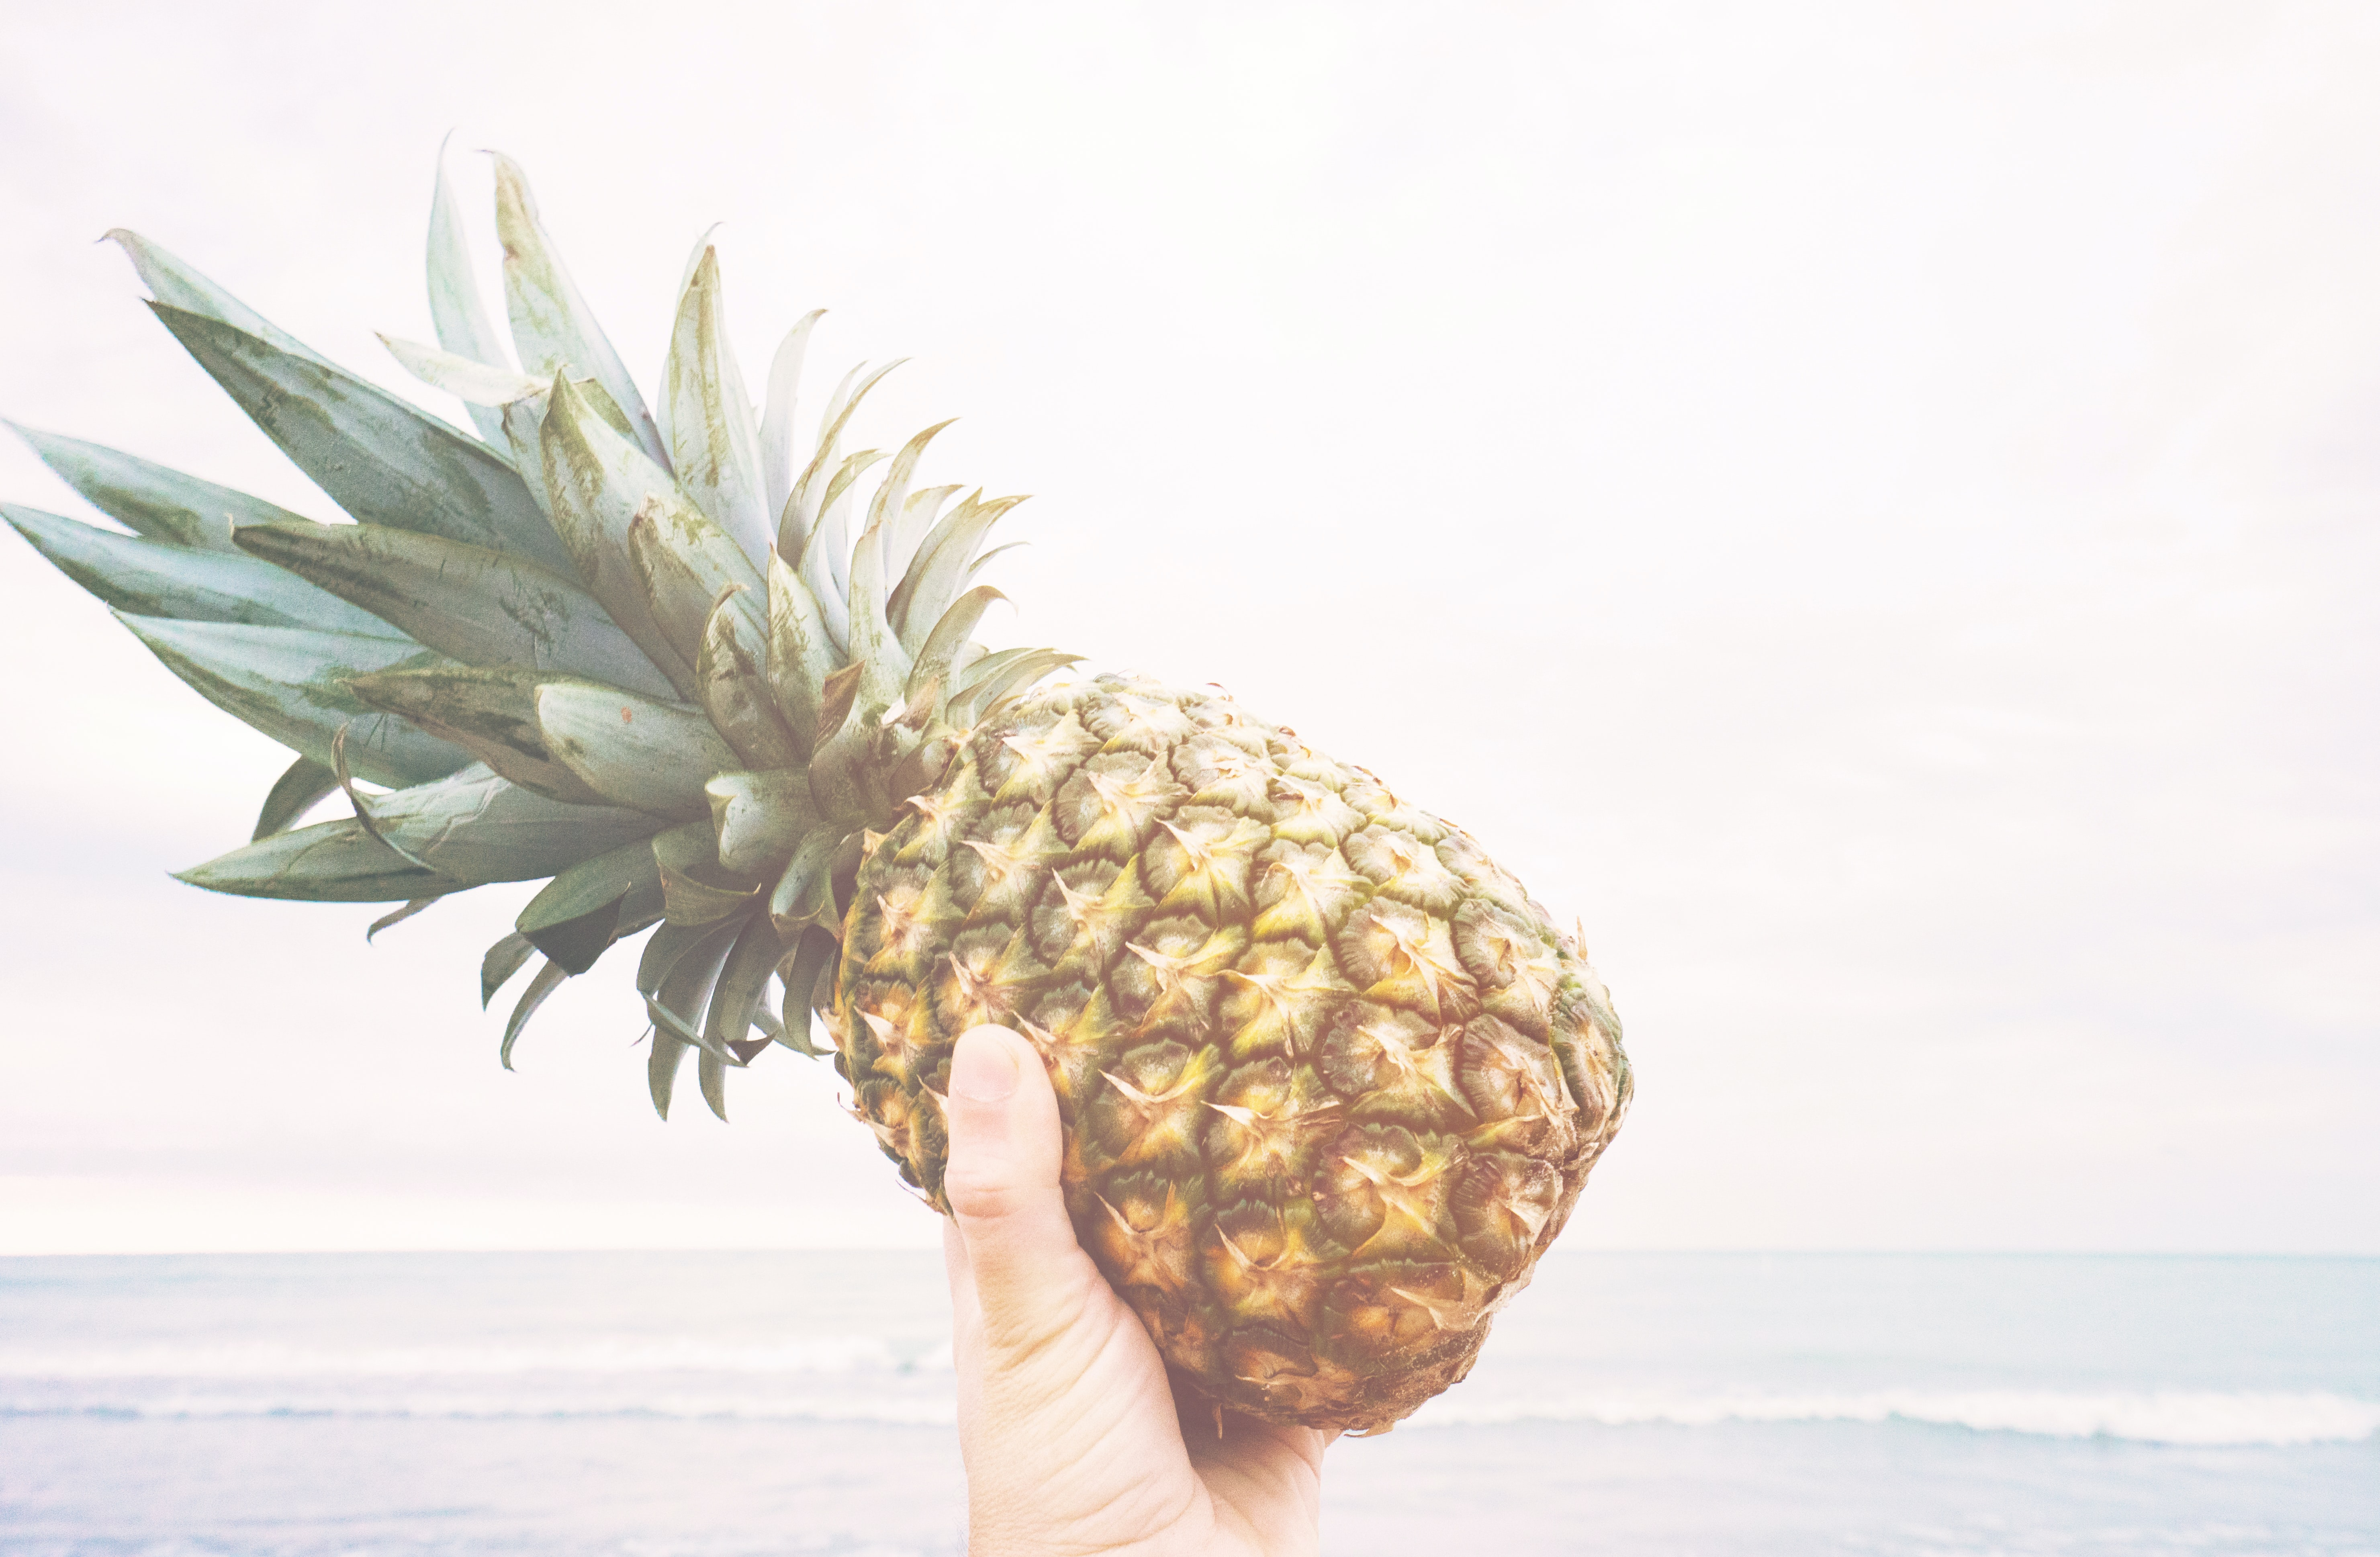 Holding a pineapple at the beach.